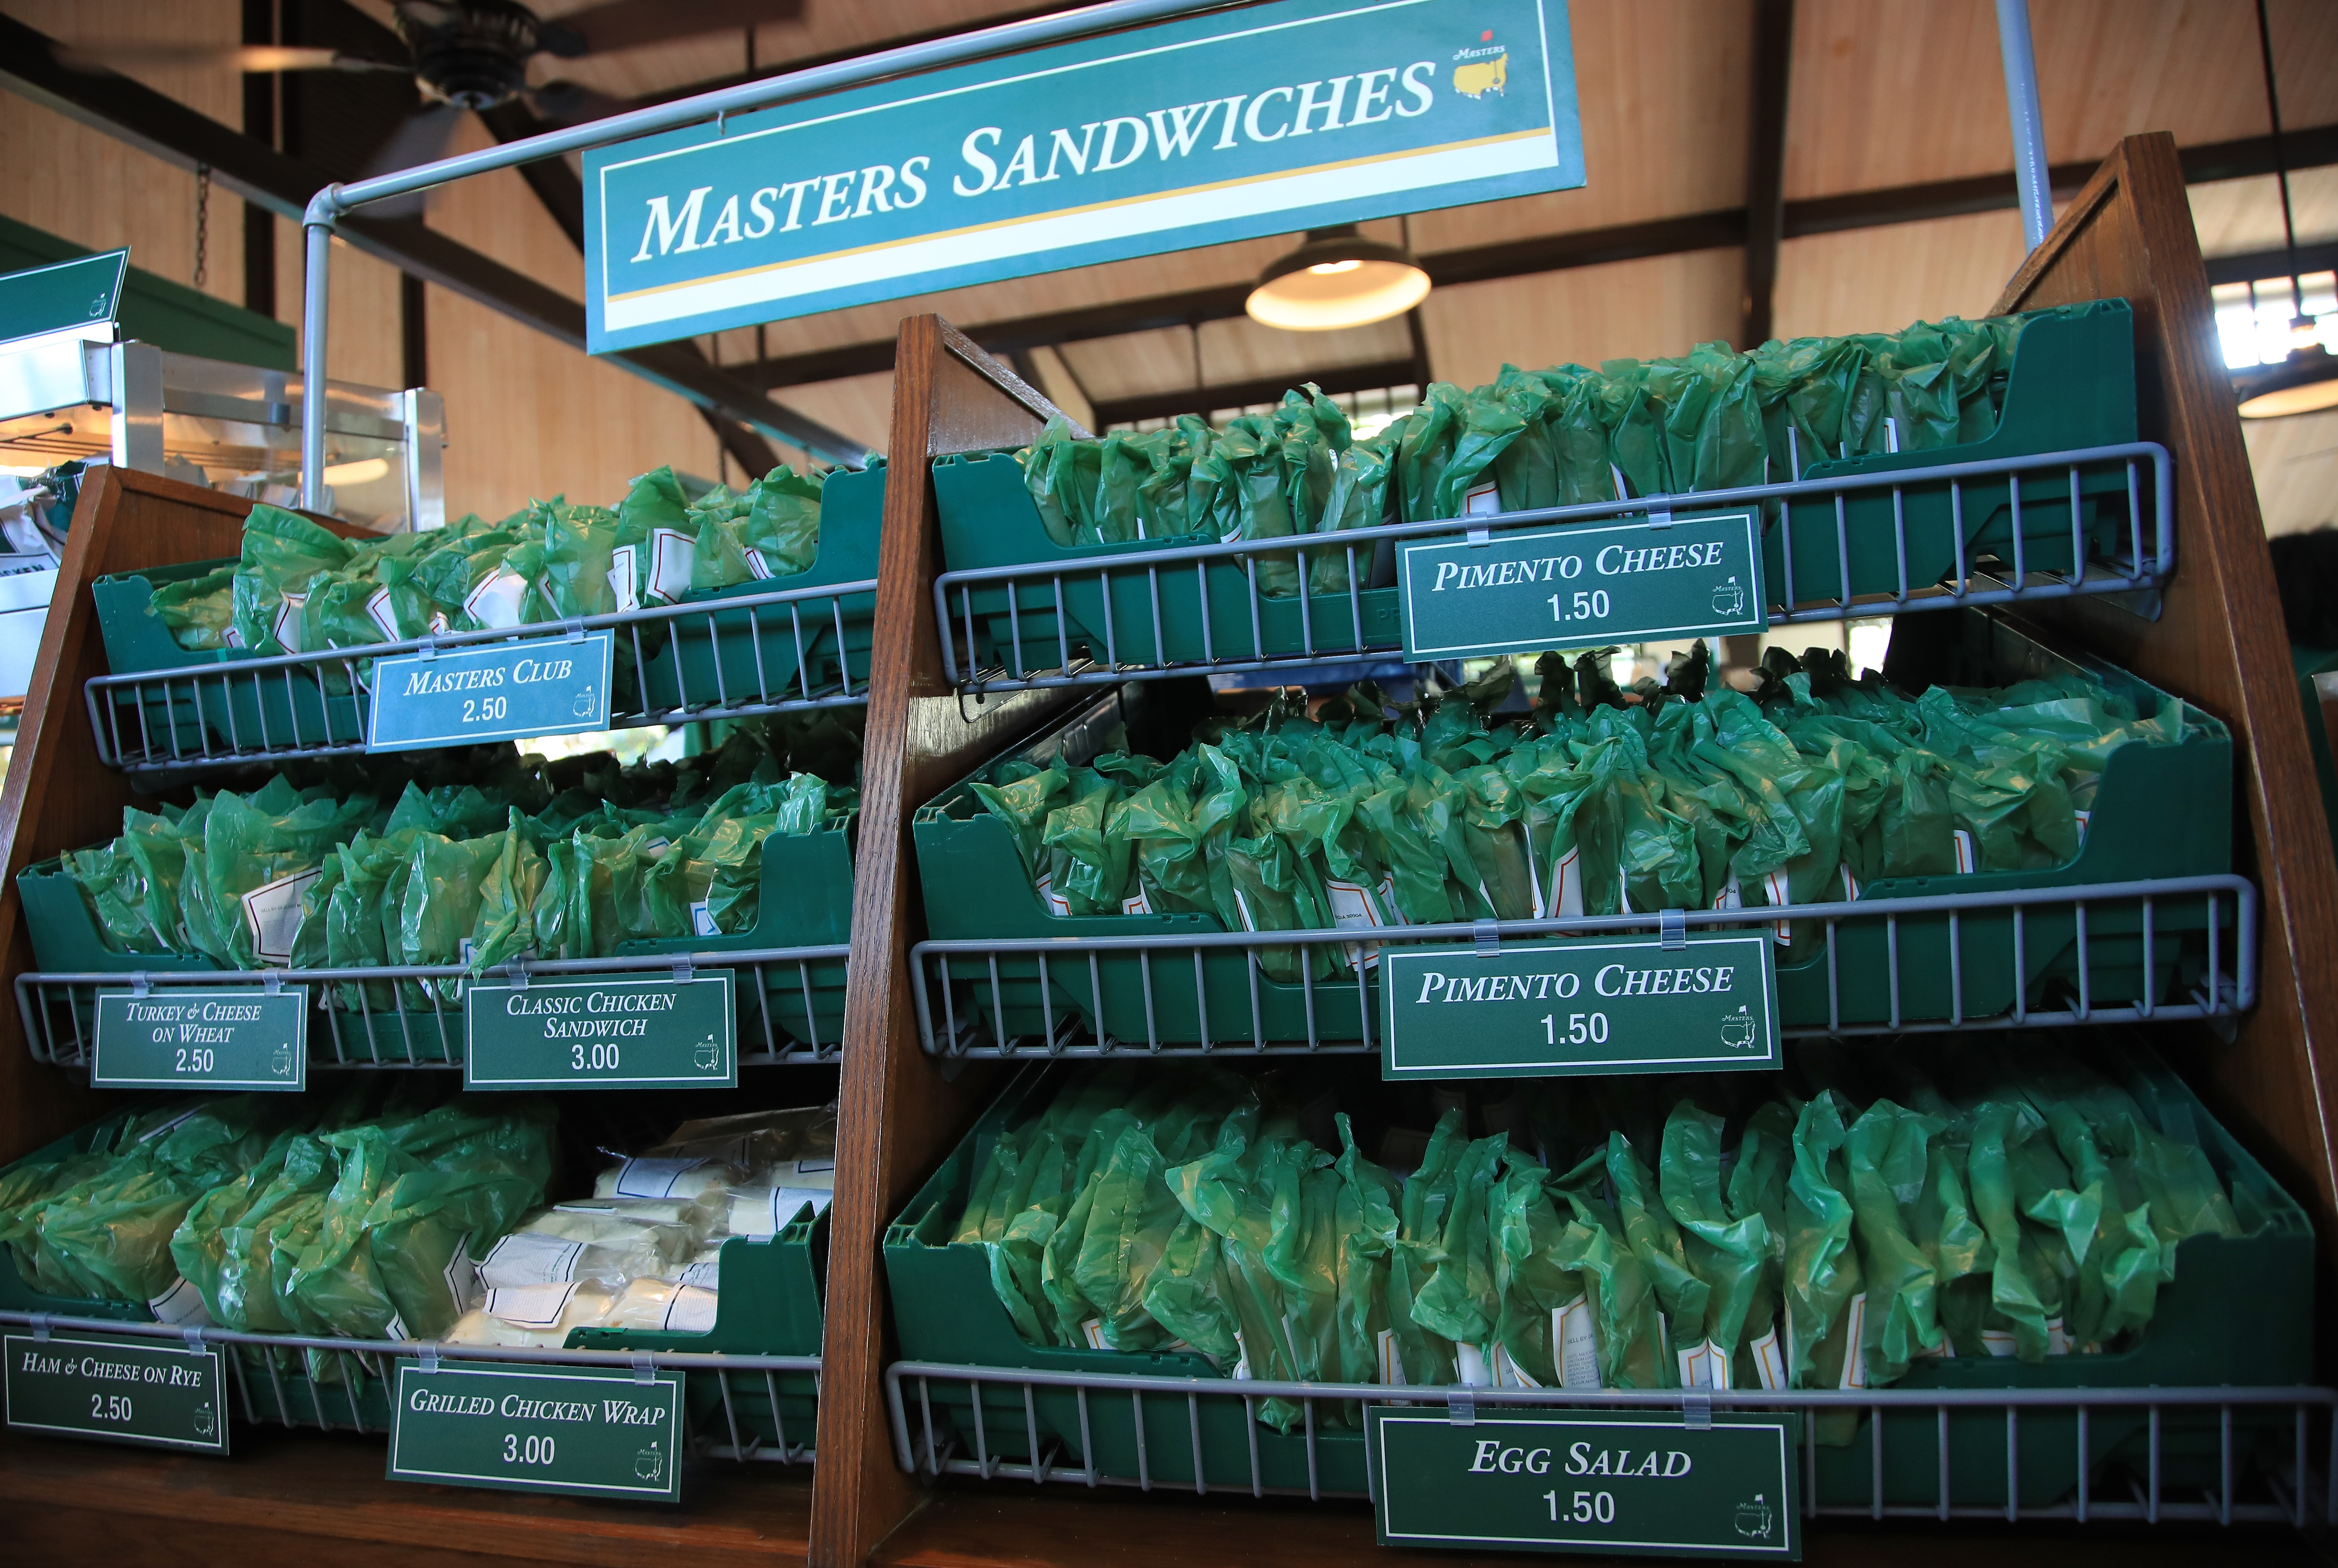 Masters sandwiches